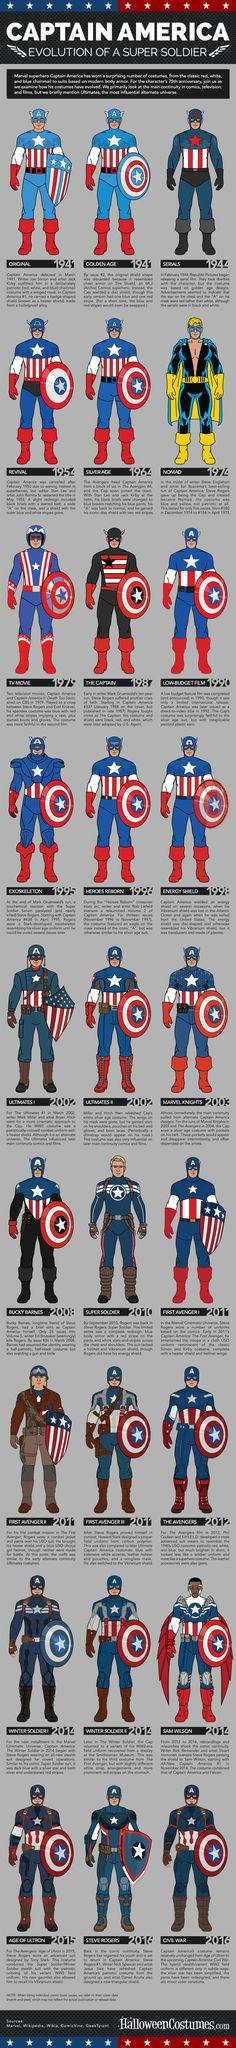 Captain America's costumes infographic